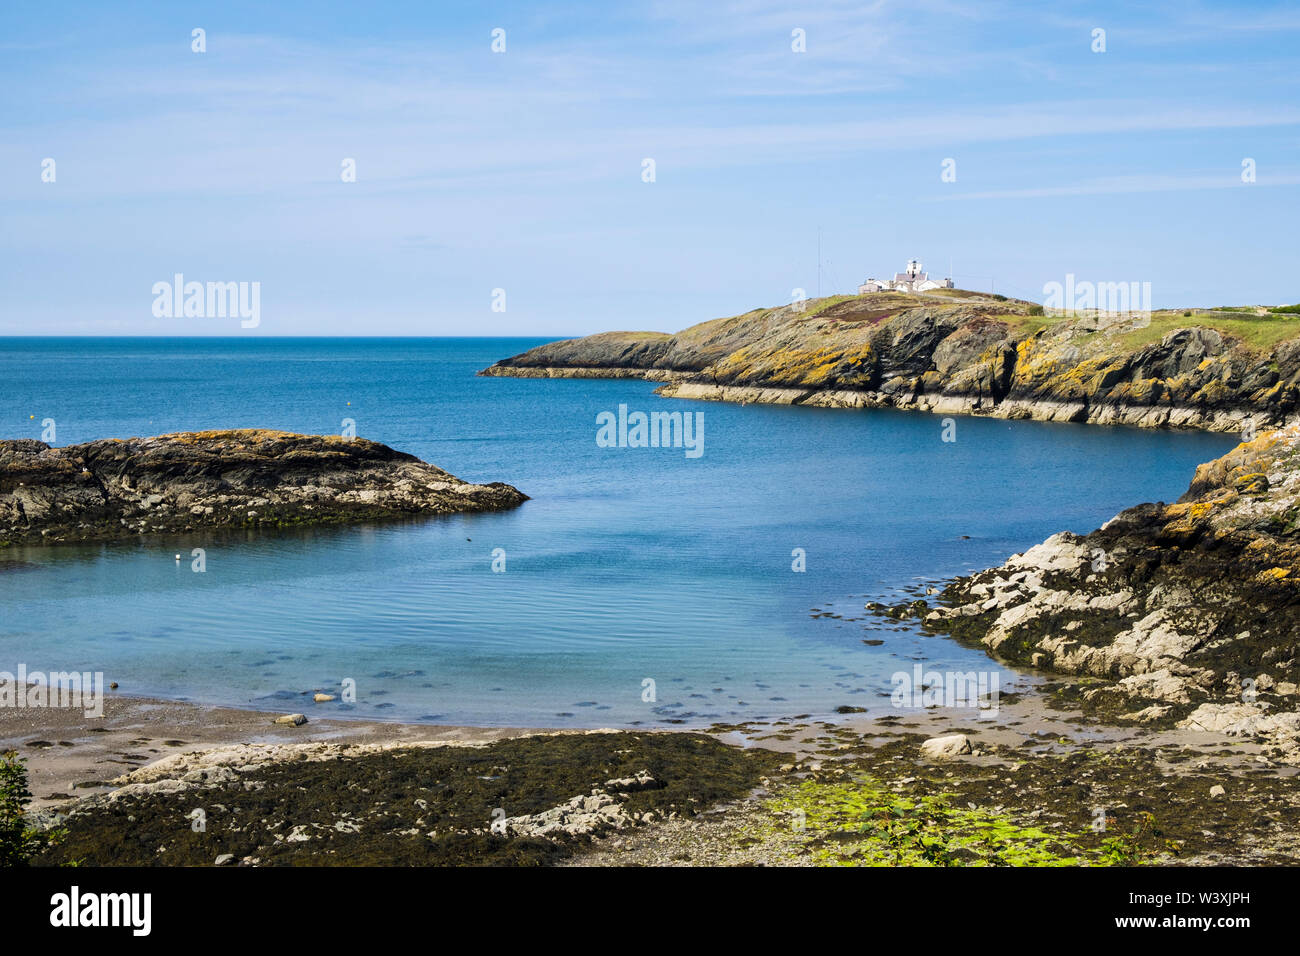 Calm blue sea in Porth Eilian and Point Lynas / Trwyn Eilian lighthouse. Llaneilian, Isle of Anglesey, north Wales, UK, Britain - Stock Image